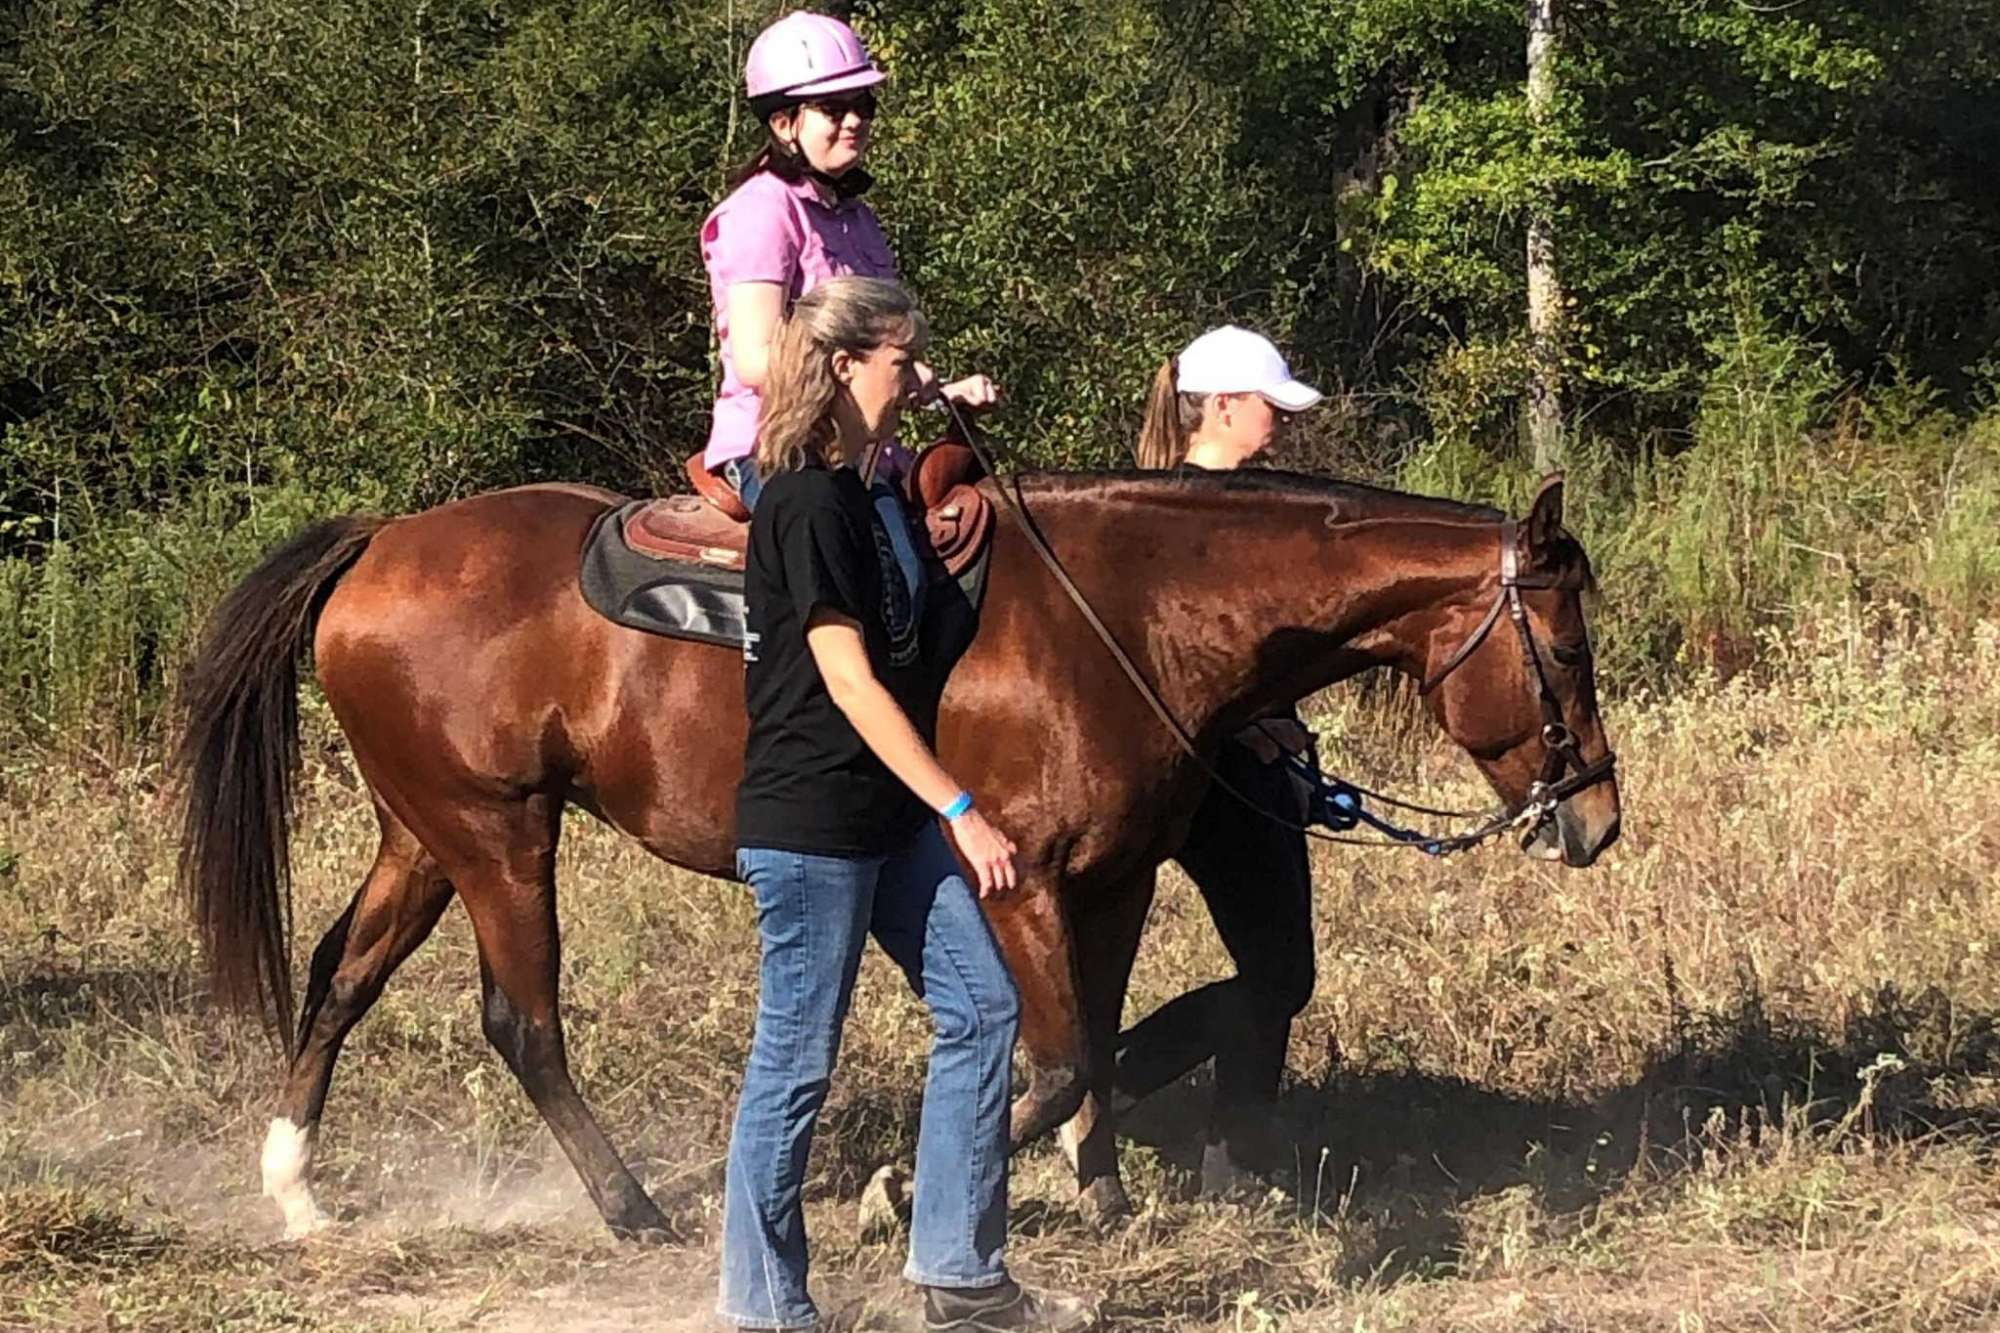 Ladana Igler rides a horse at the SIRE location in Spring.